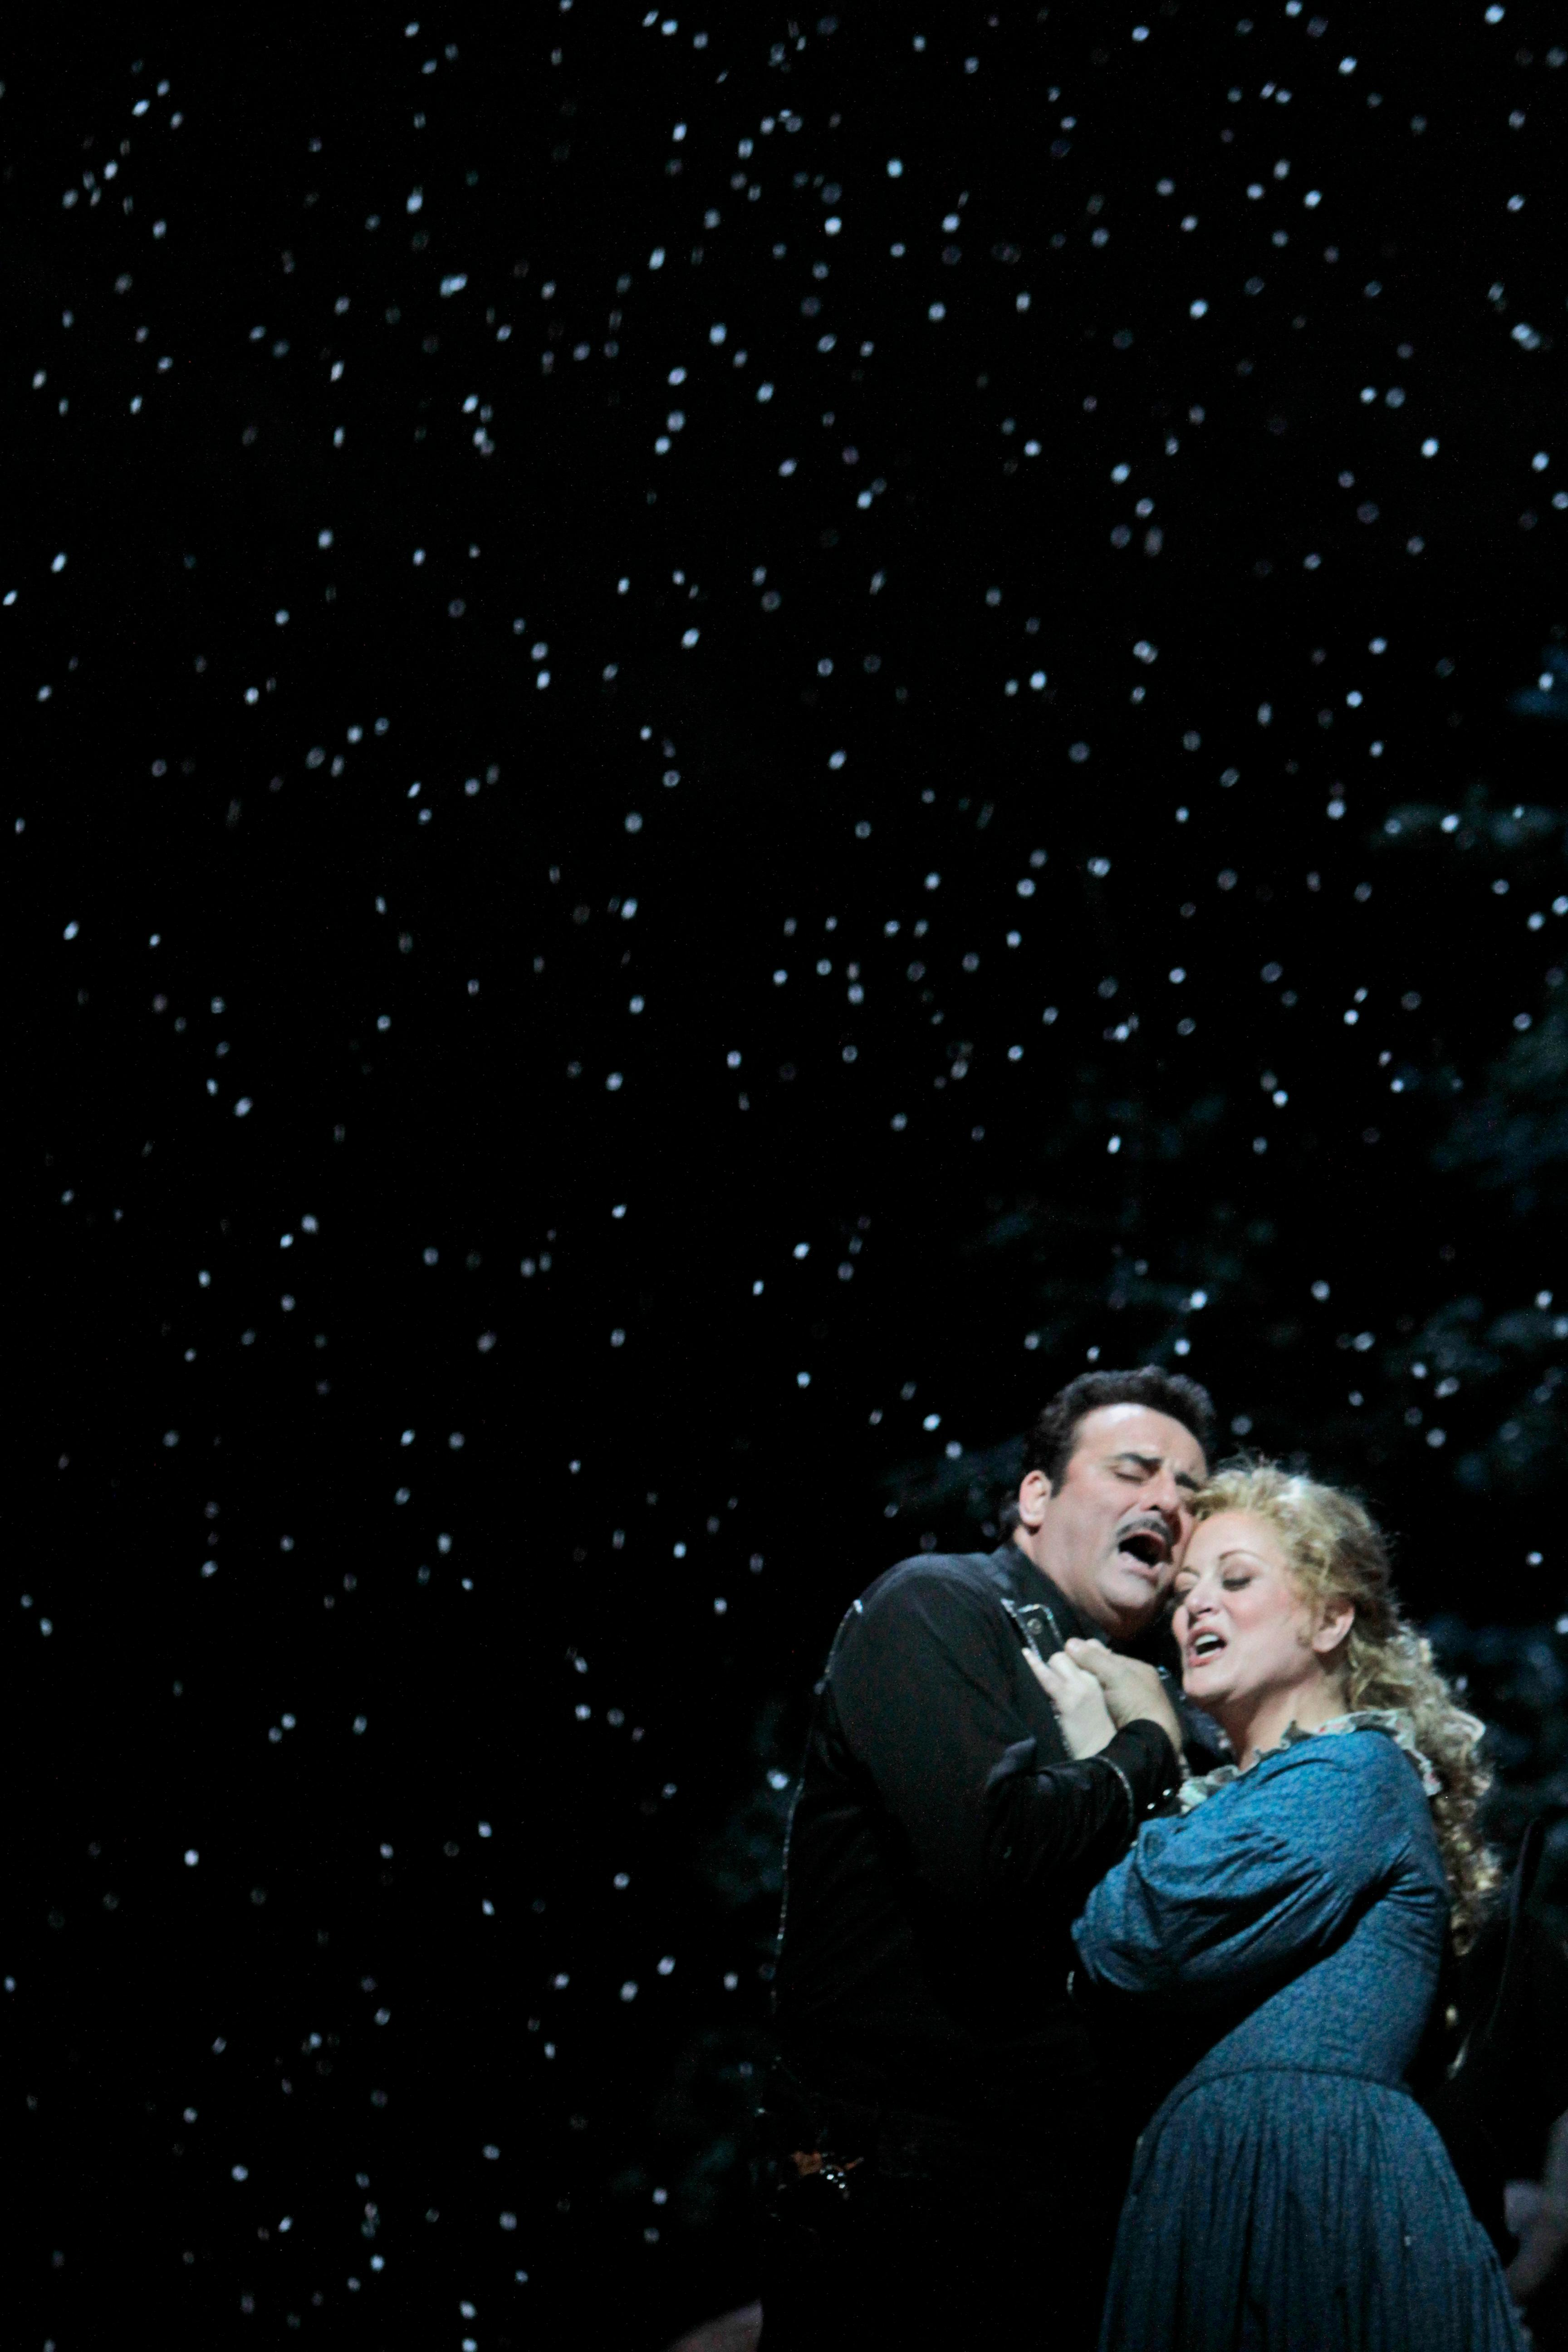 "FILE - This Friday, Dec. 3, 2010, file photo shows Marcello Giordani, left, performing as Ramerrez alongside Deborah Voigt performing as Minnie during the final dress rehearsal of Giacomo Puccini's ""La Fanciulla del West,"" at the Metropolitan Opera in New York. Tenor Marcello Giordani, renowned for a voice of beauty and heft that made him a star at the world's top opera houses, died Saturday, Oct. 5, 2019. He was 56. (AP Photo/Mary Altaffer, File)"